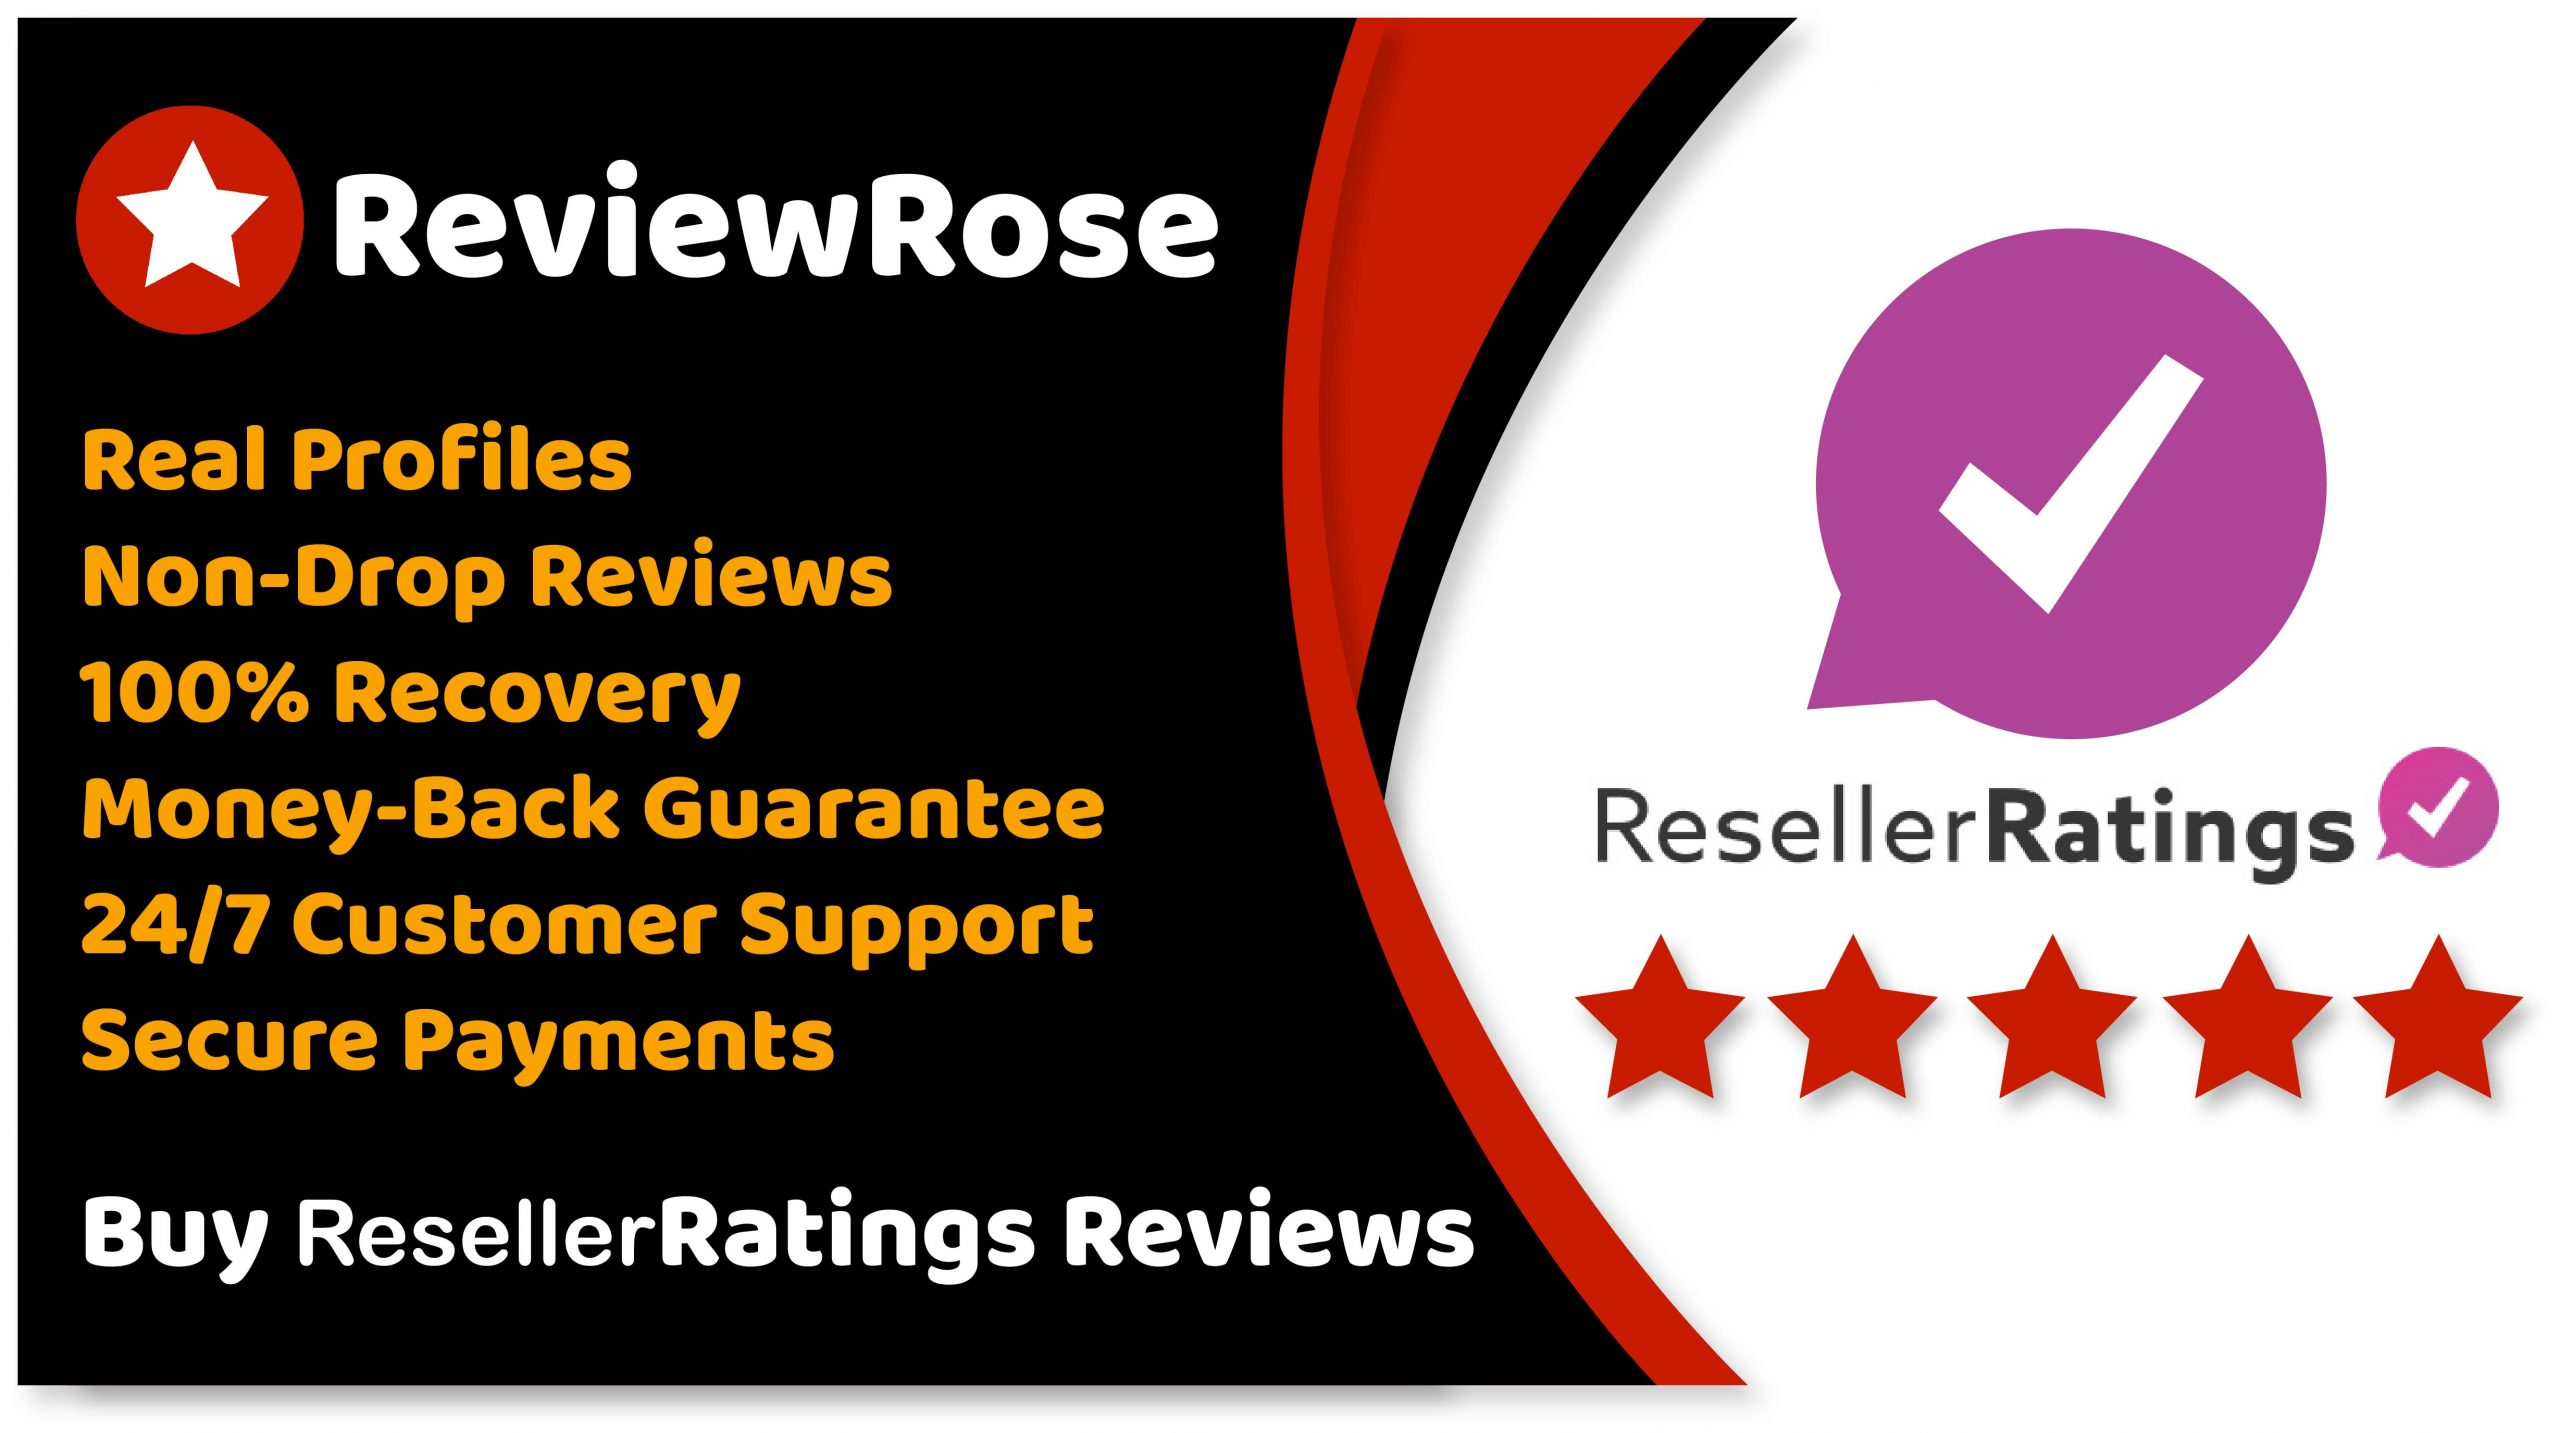 Buy Resellerratings Reviews